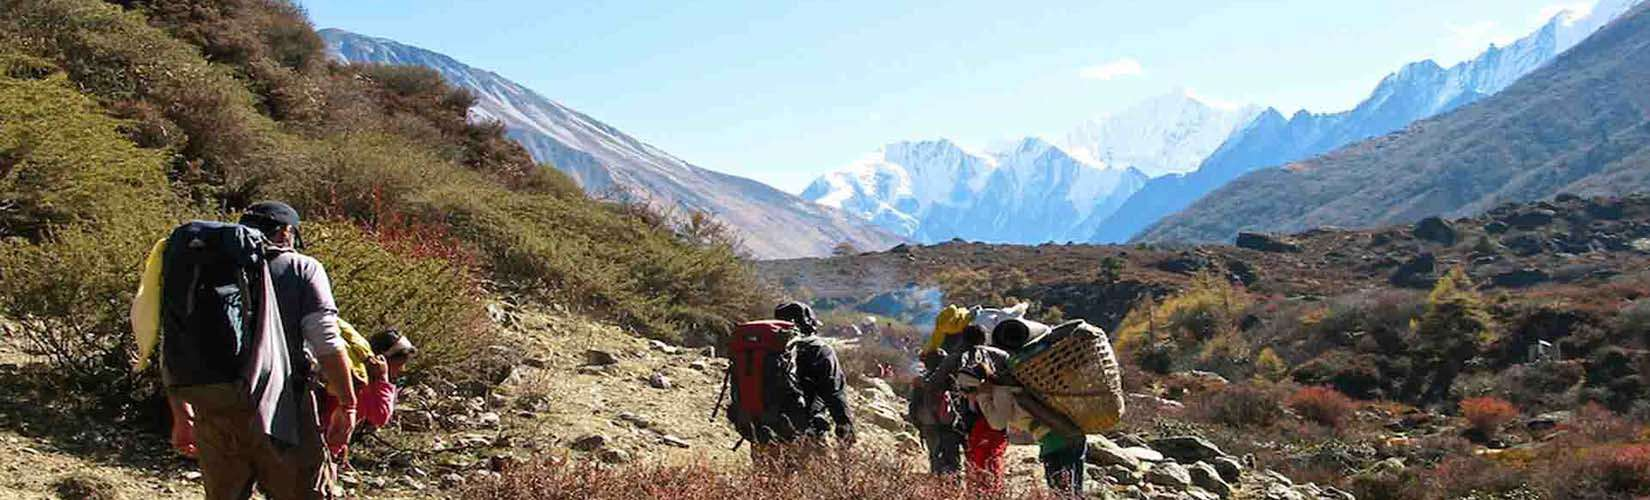 Best Time for Langtang Valley Trek